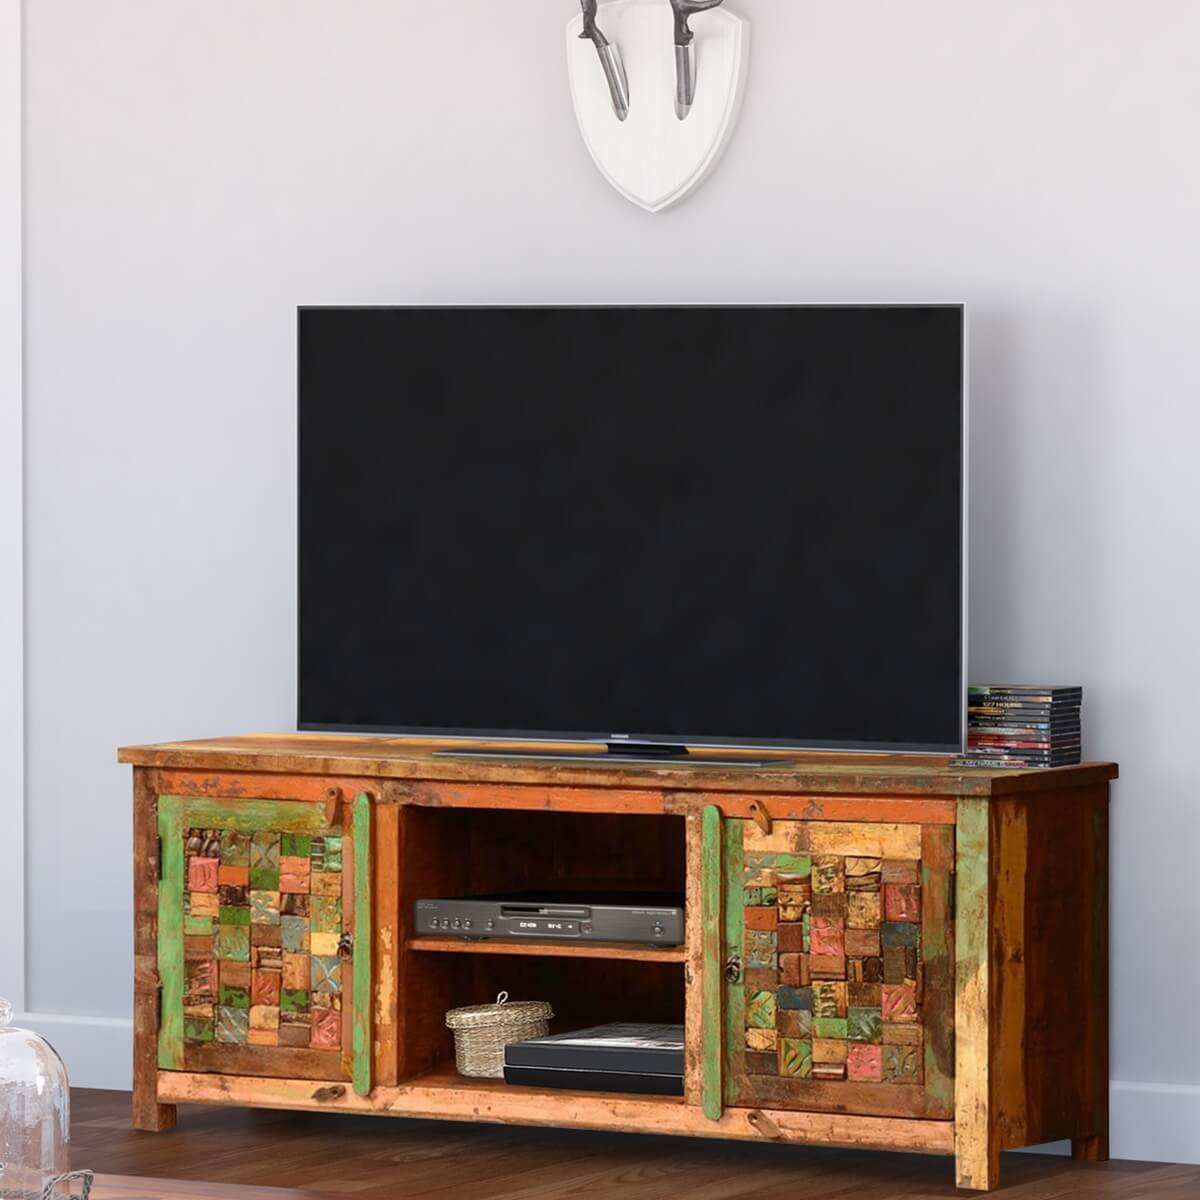 Charmant Textured Tiles Reclaimed Wood 60 TV Console Media Cabinet